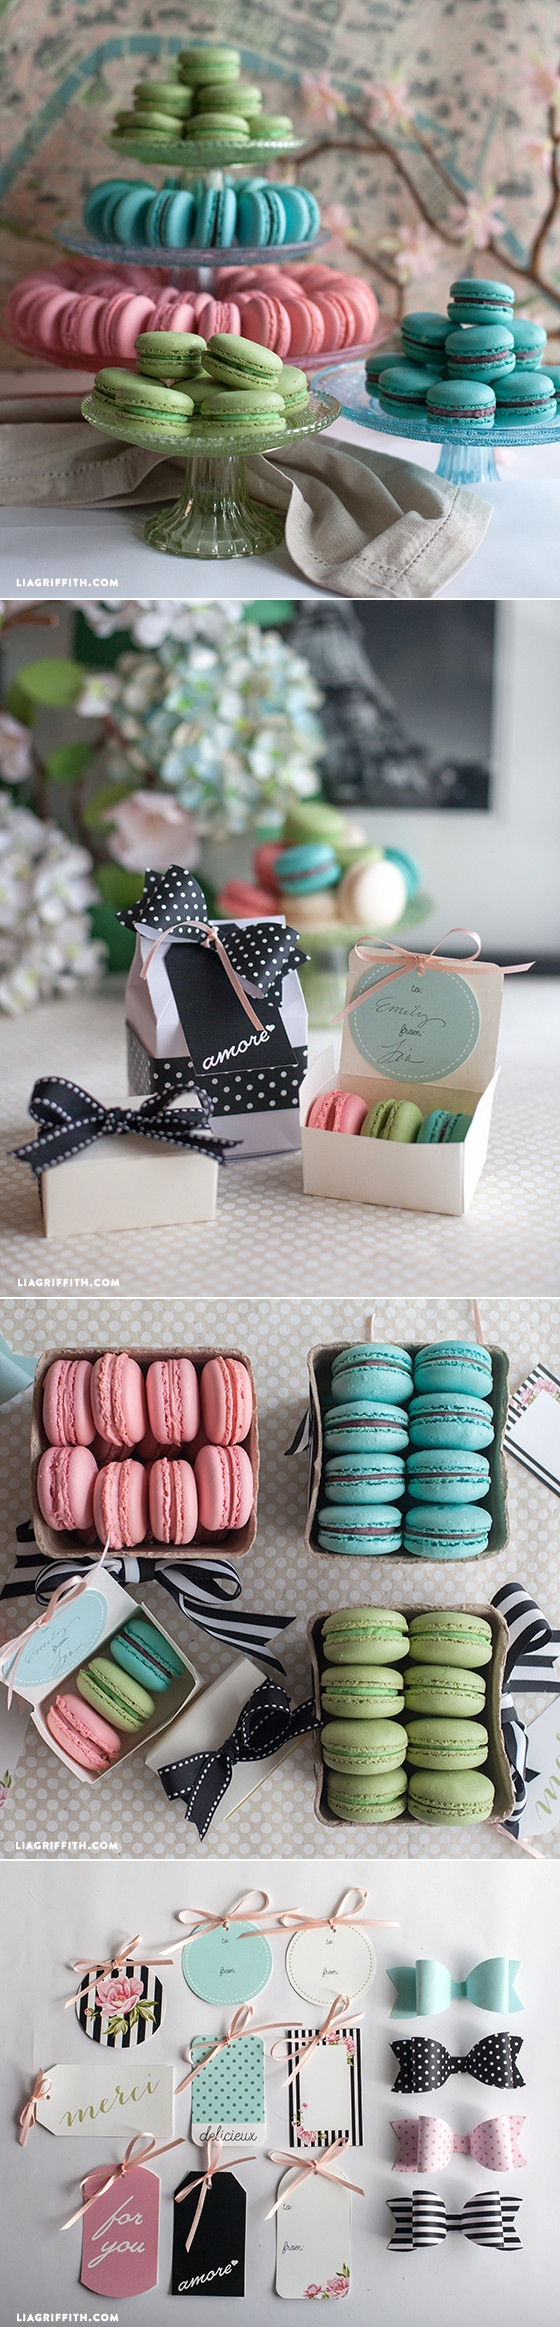 Win a 5 Night Trip to Paris and Printable Gift Tags at www.LiaGriffith.com #SpringtimeinParis